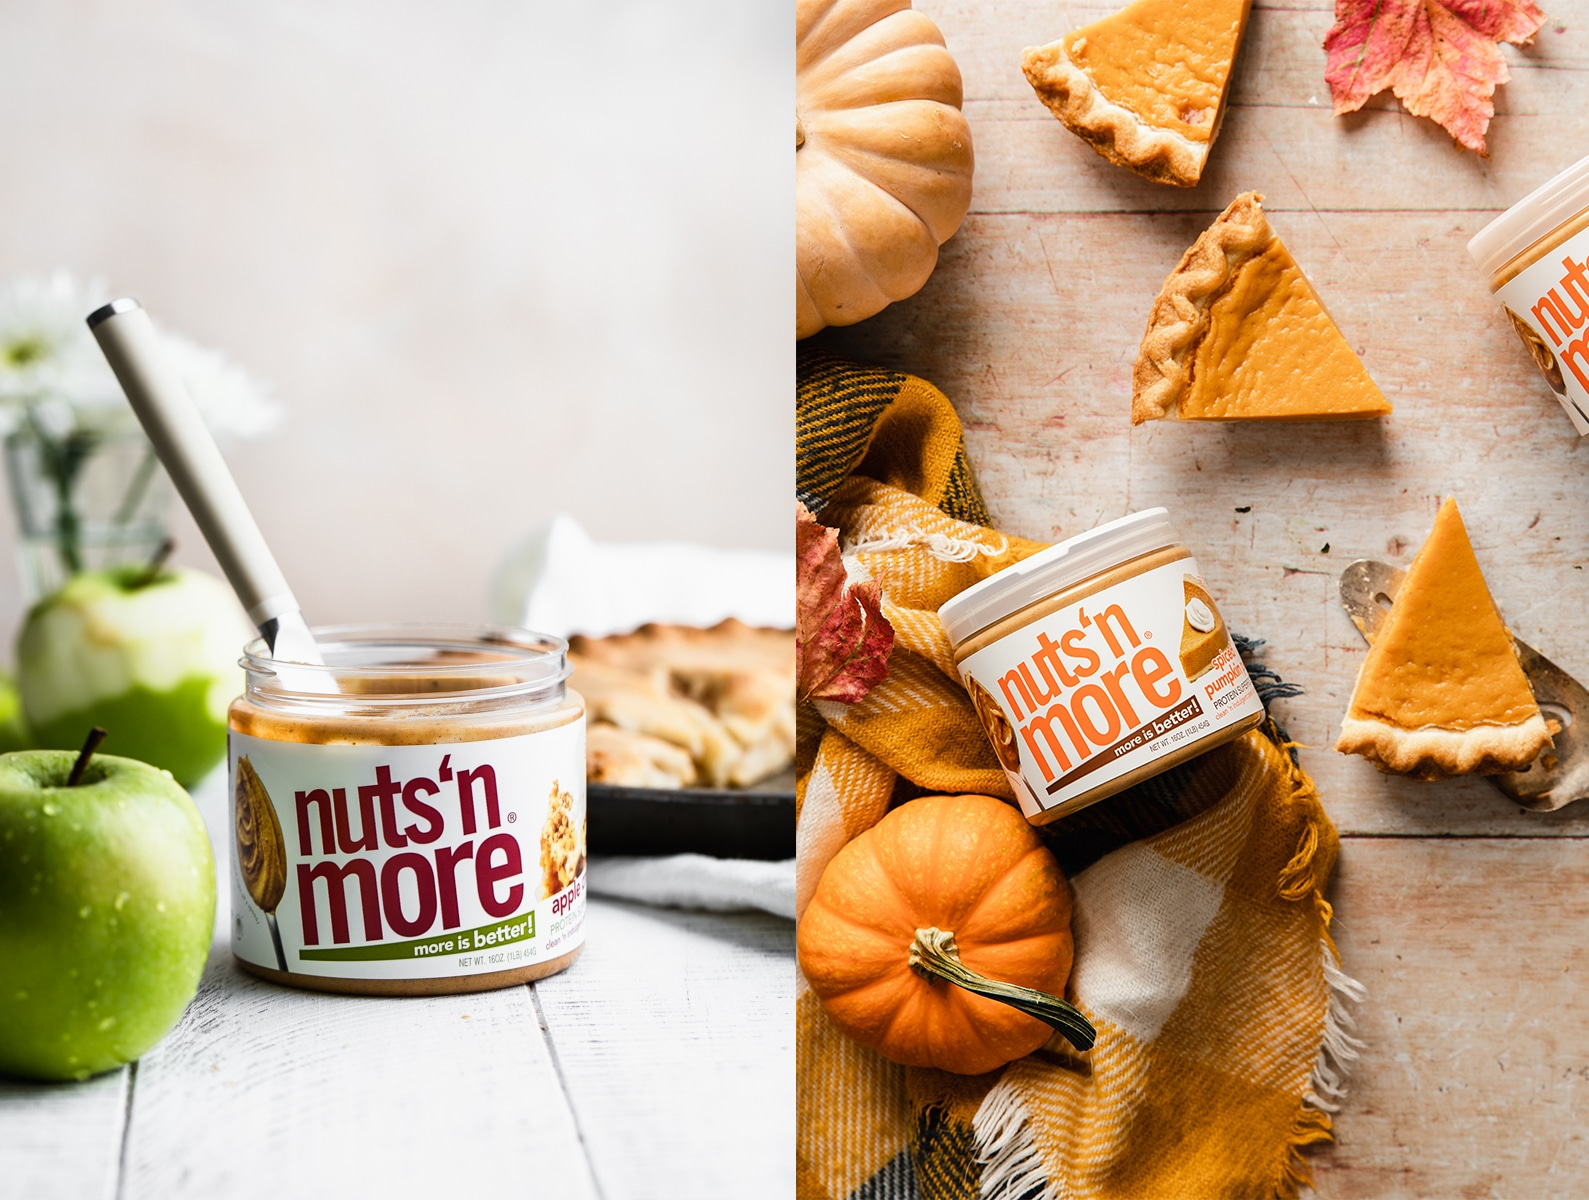 Enter to win 2 Jars of Apple Crisp Nuts 'N More Peanut Butter and 2 Jars of Spiced Pumpkin Pie Nuts 'N More Peanut Butter. Giveaway Image